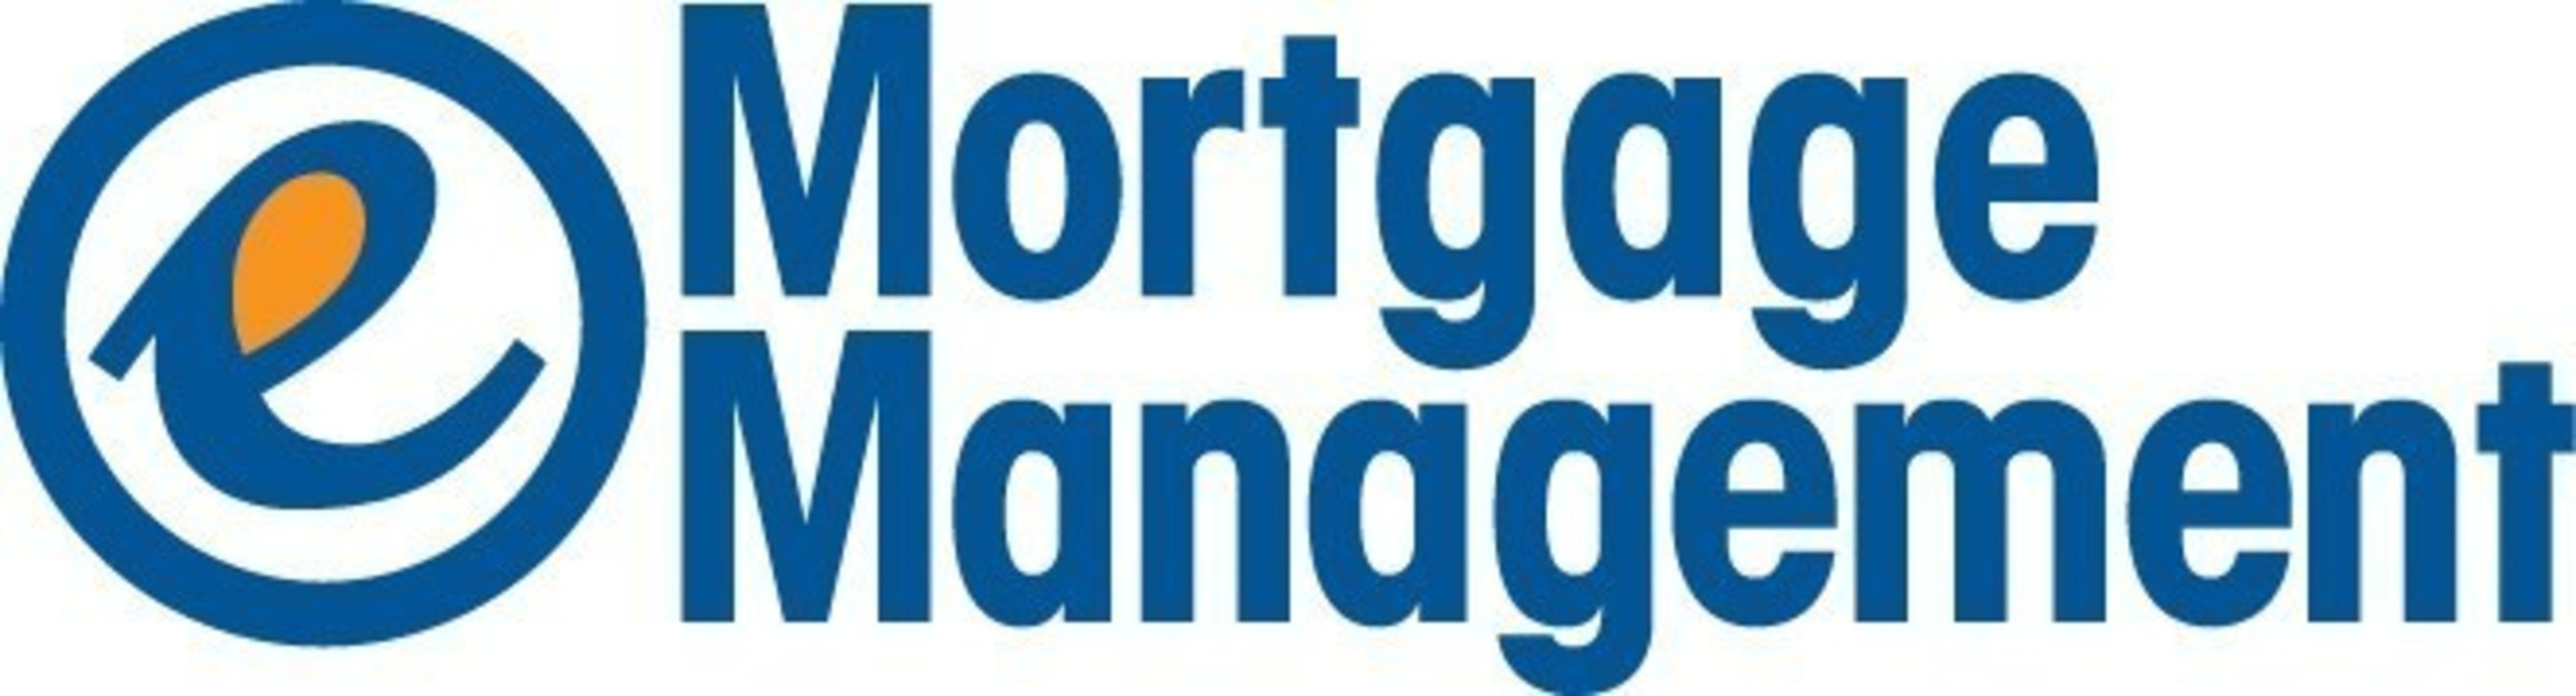 At E Mortgage Management, Gregory Englesbe, Leadership and Teamwork Make All the Difference